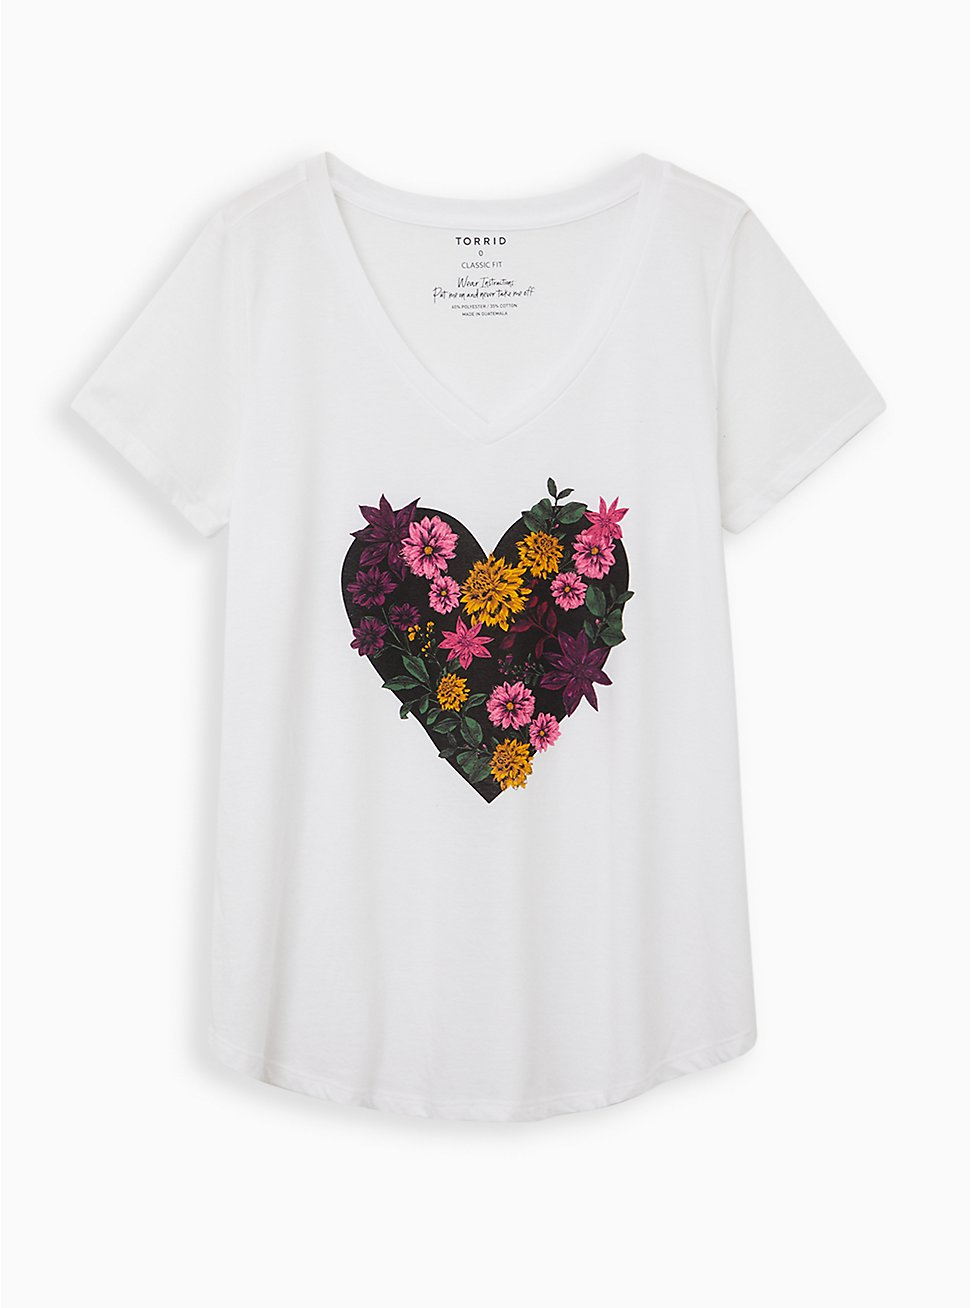 Girlfriend Tee - Signature Jersey White Floral Heart, BRIGHT WHITE, hi-res